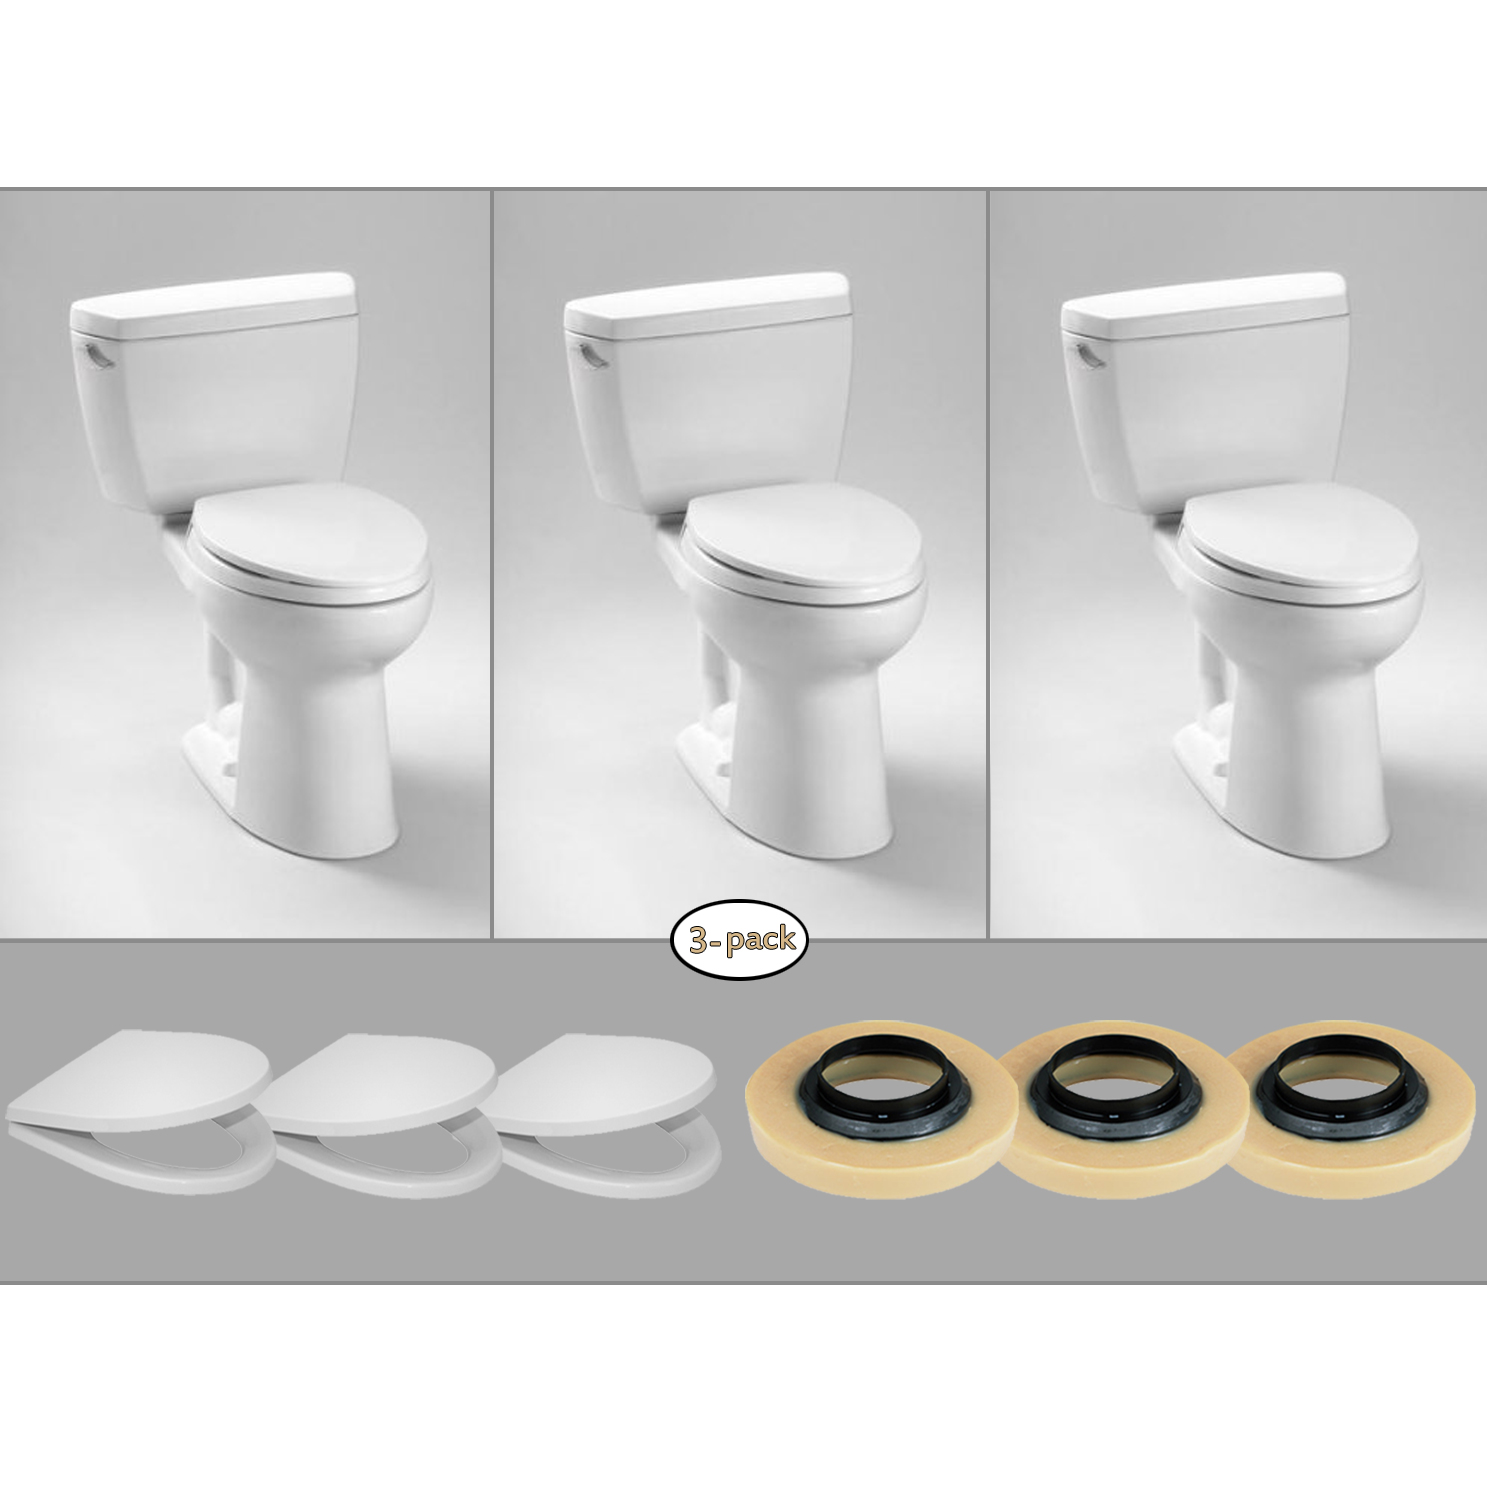 Index of /product/TOTO-TOILET-PACKS